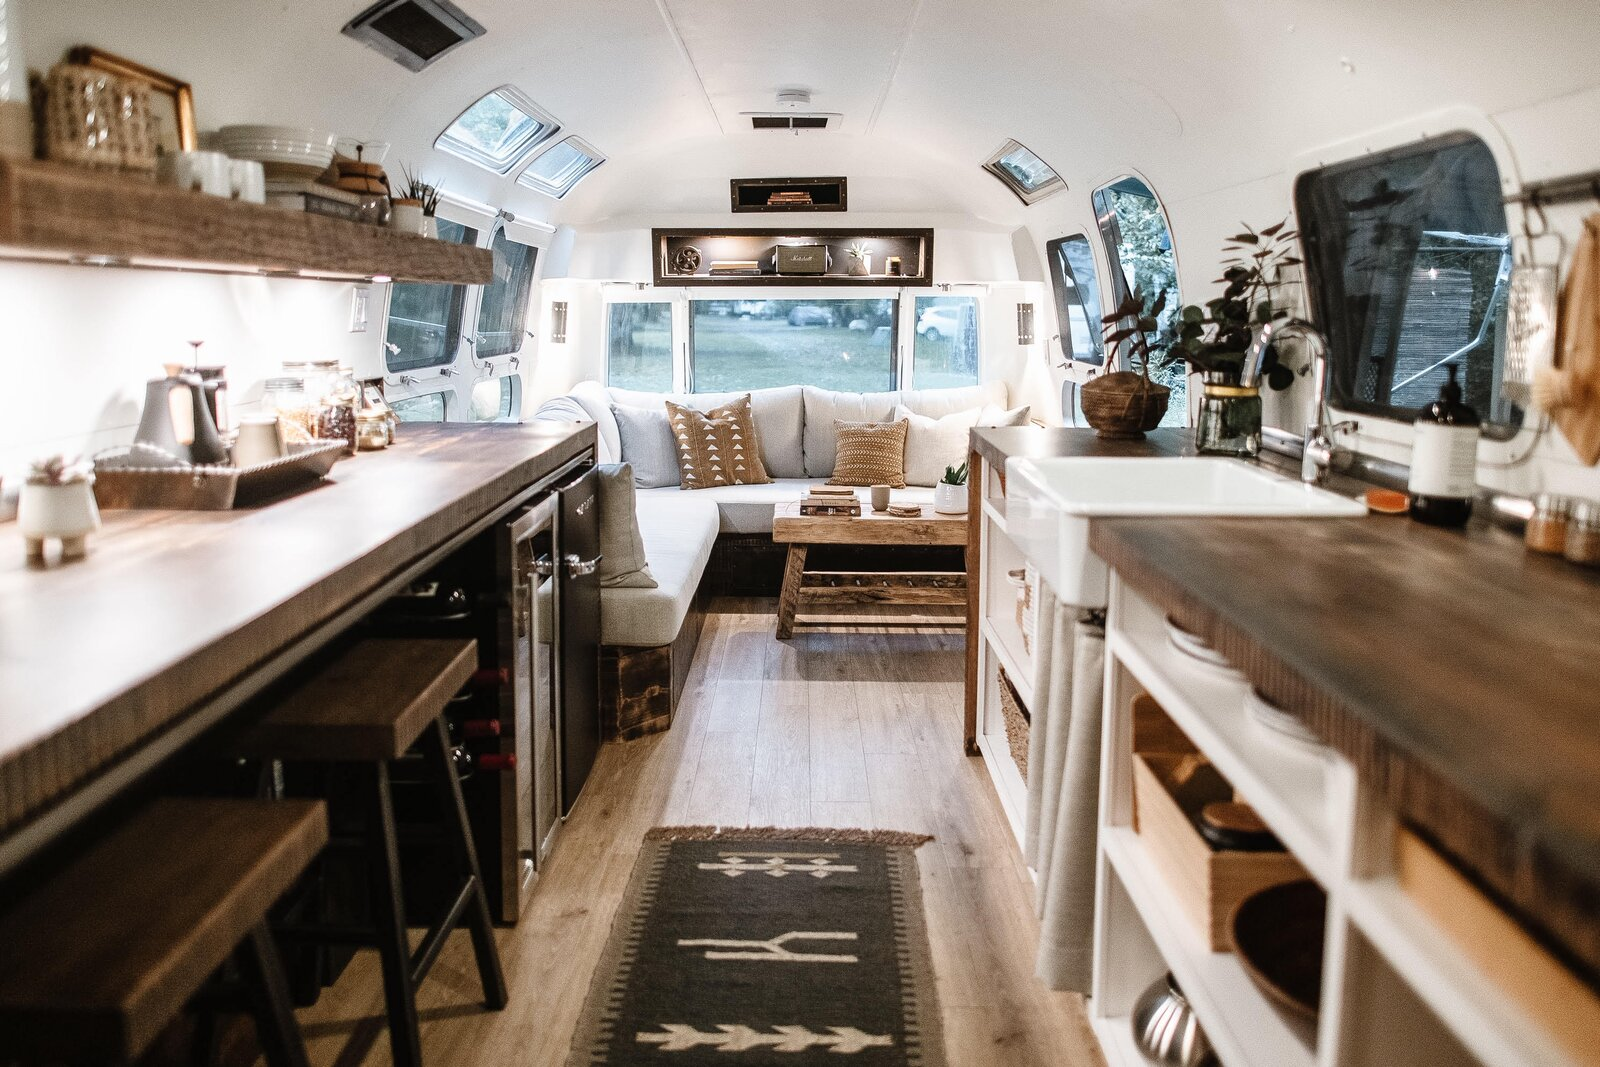 Cortes the Airstream interior